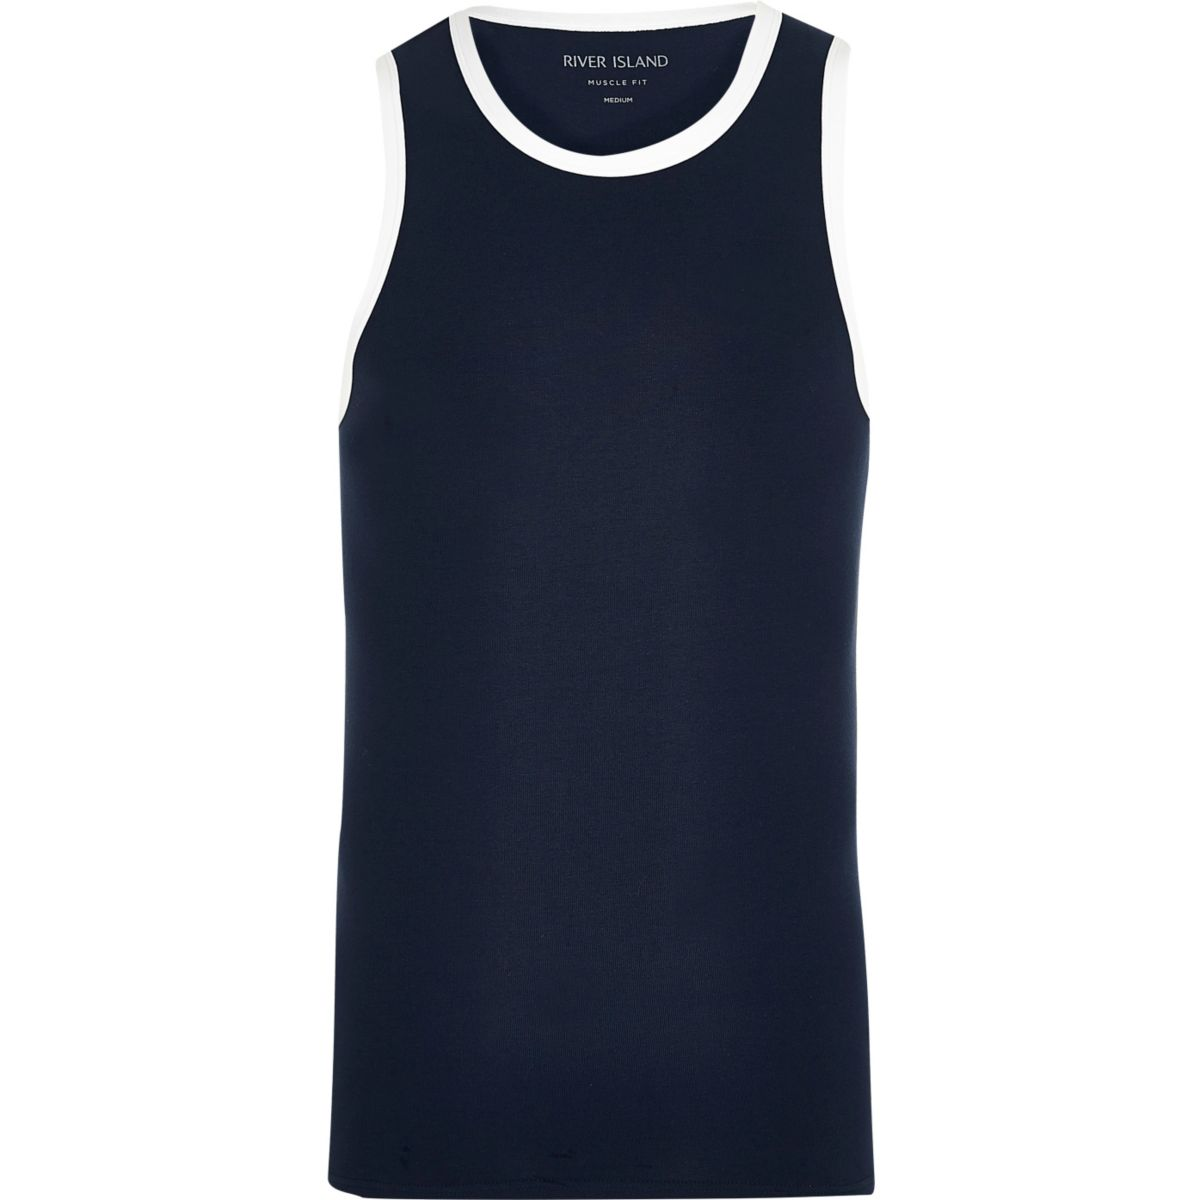 Navy muscle fit ringer tank